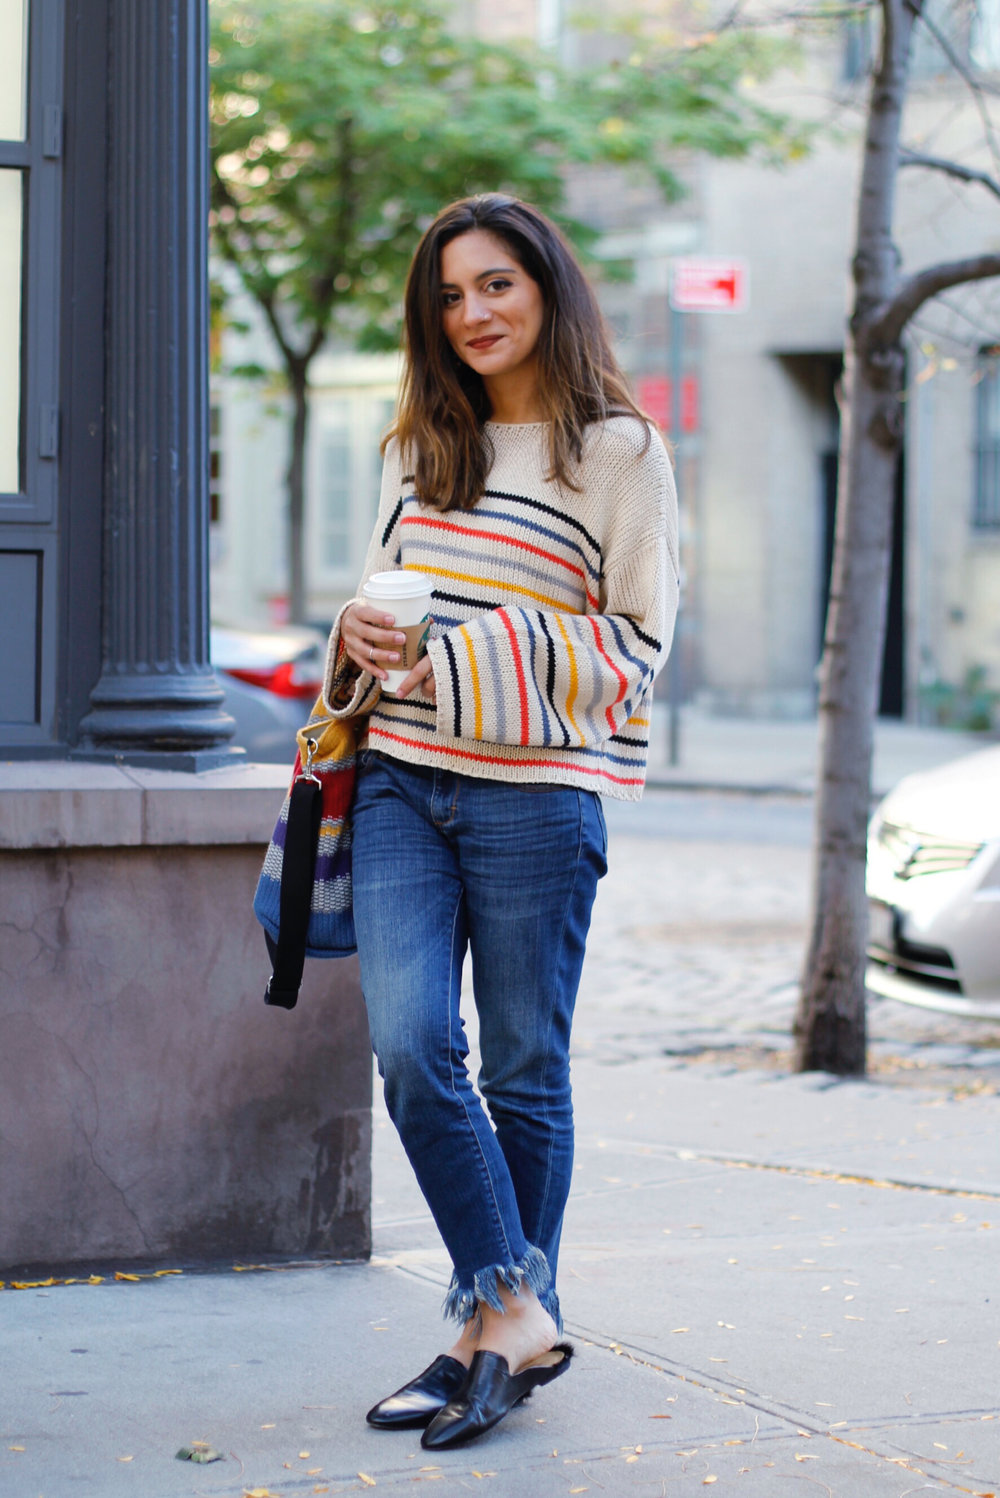 Comfy Outfit Ideas for Fall-Winter 2018